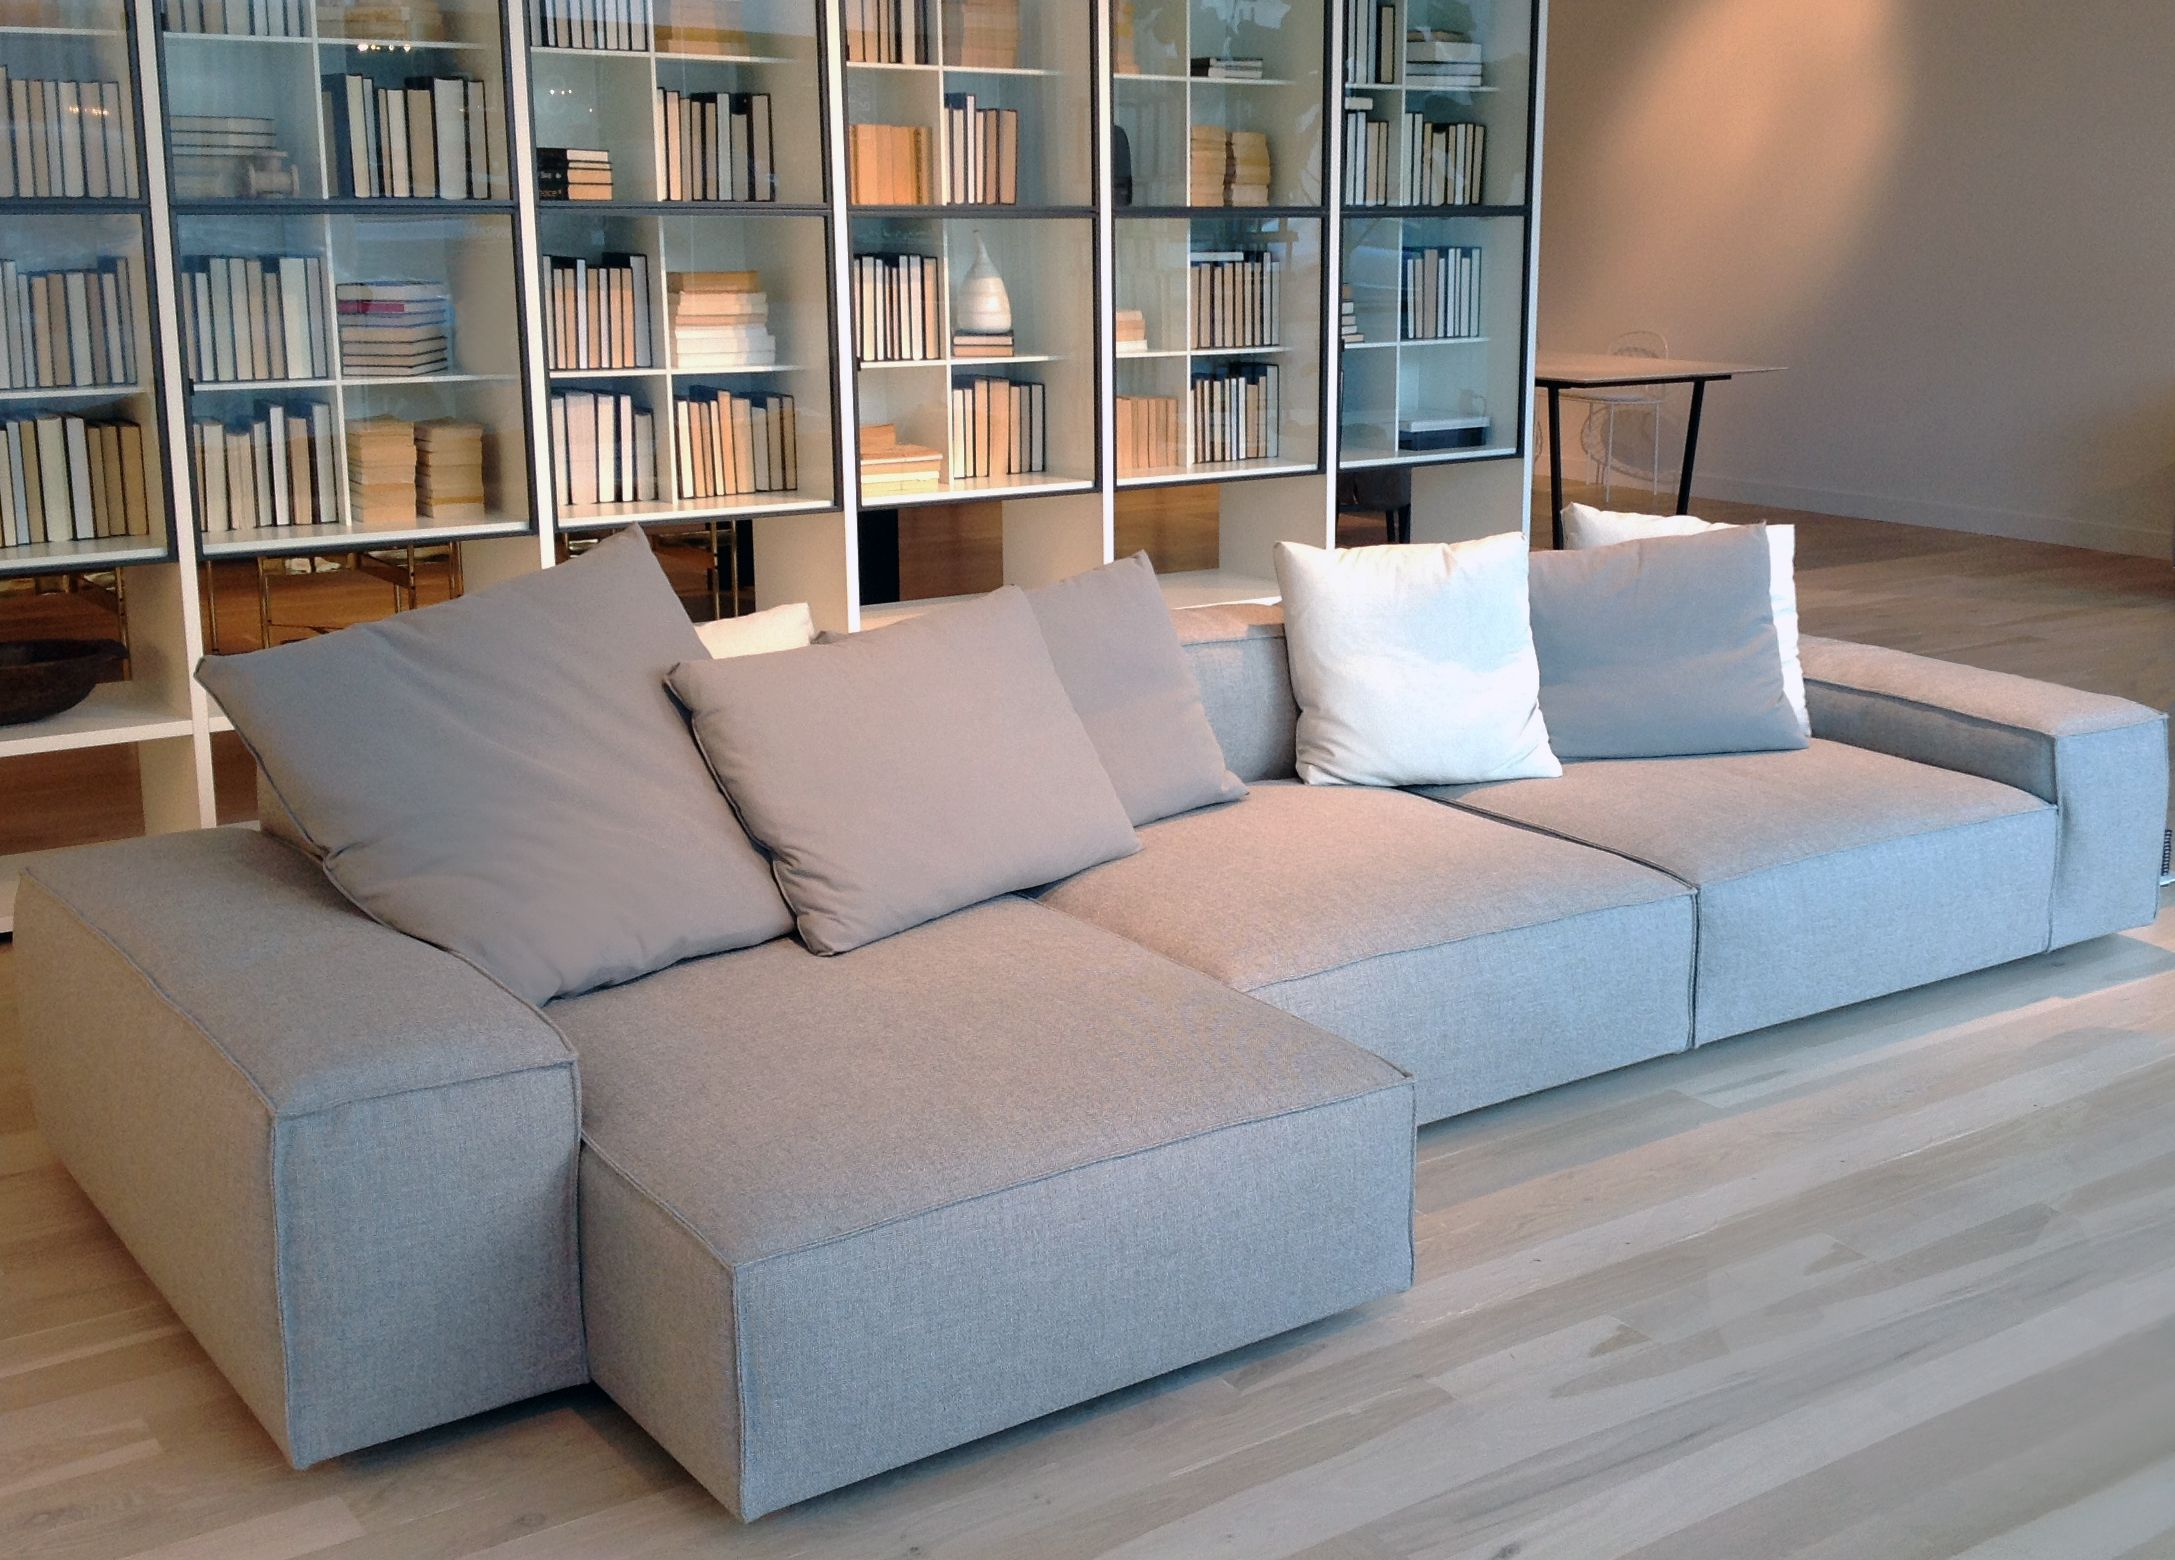 Living Divani Neowall Sofa Bed Design Lovers Neowall Sofa Designed By Piero Lissoni For